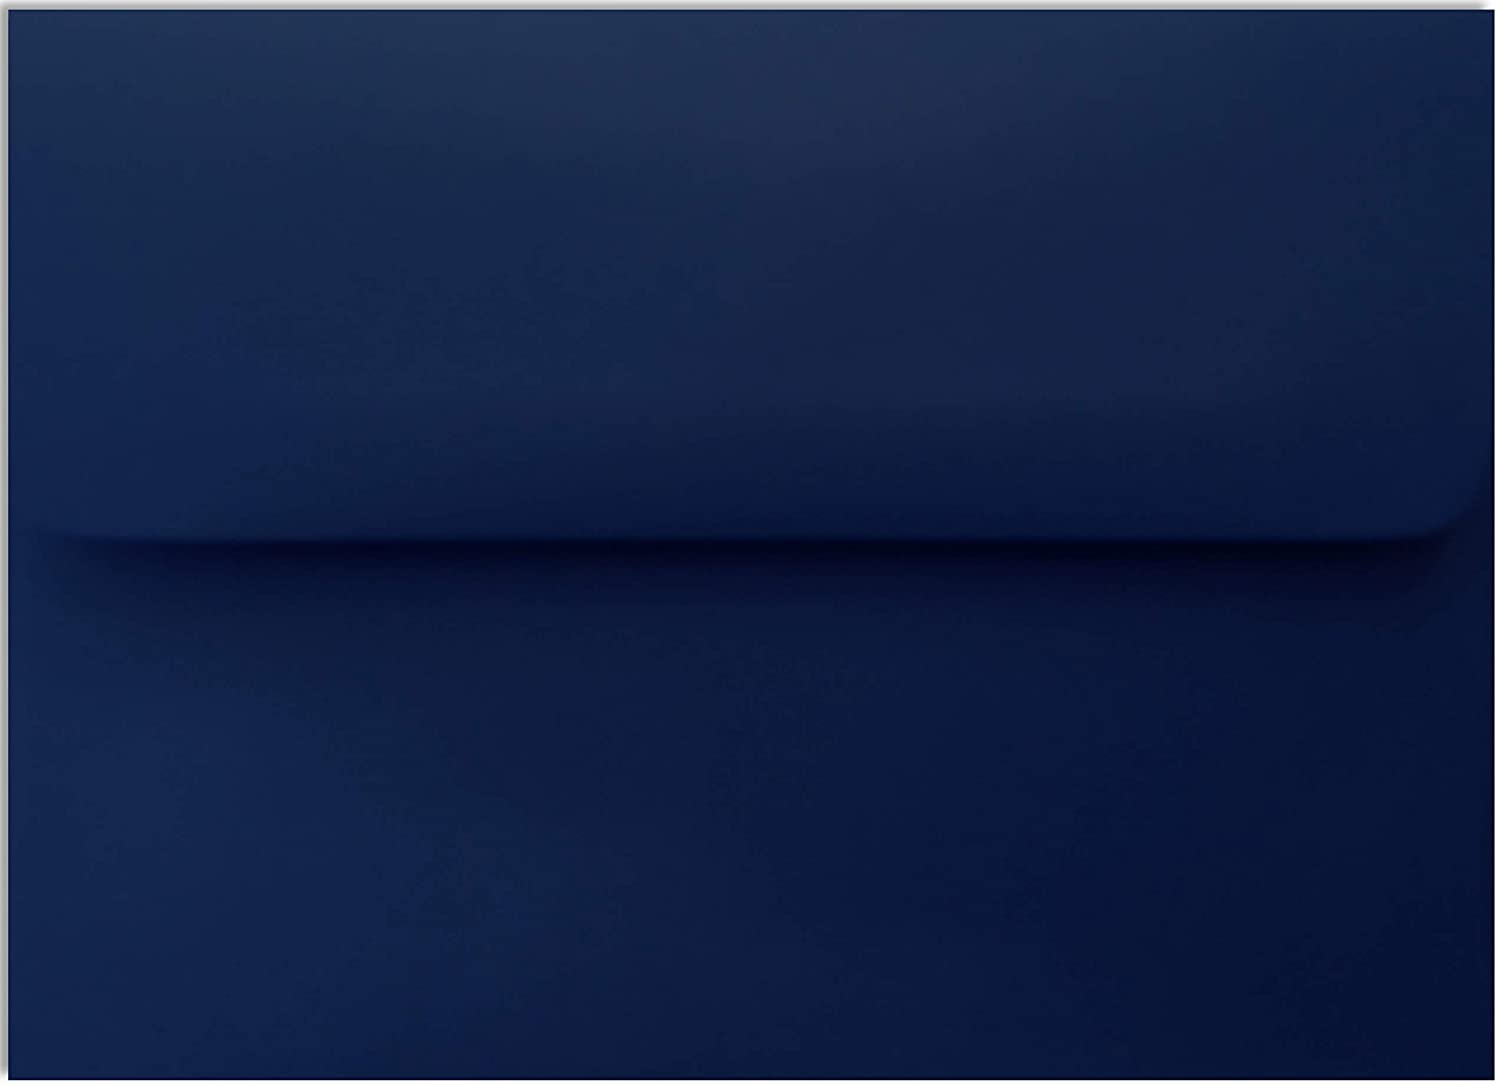 Navy Blue 70lb 1000 Boxed A7 Envelopes 5-1/4 x 7-1/4 for 5 x 7 Weddings Greeting Cards Invitations Announcement Showers from The Envelope Gallery